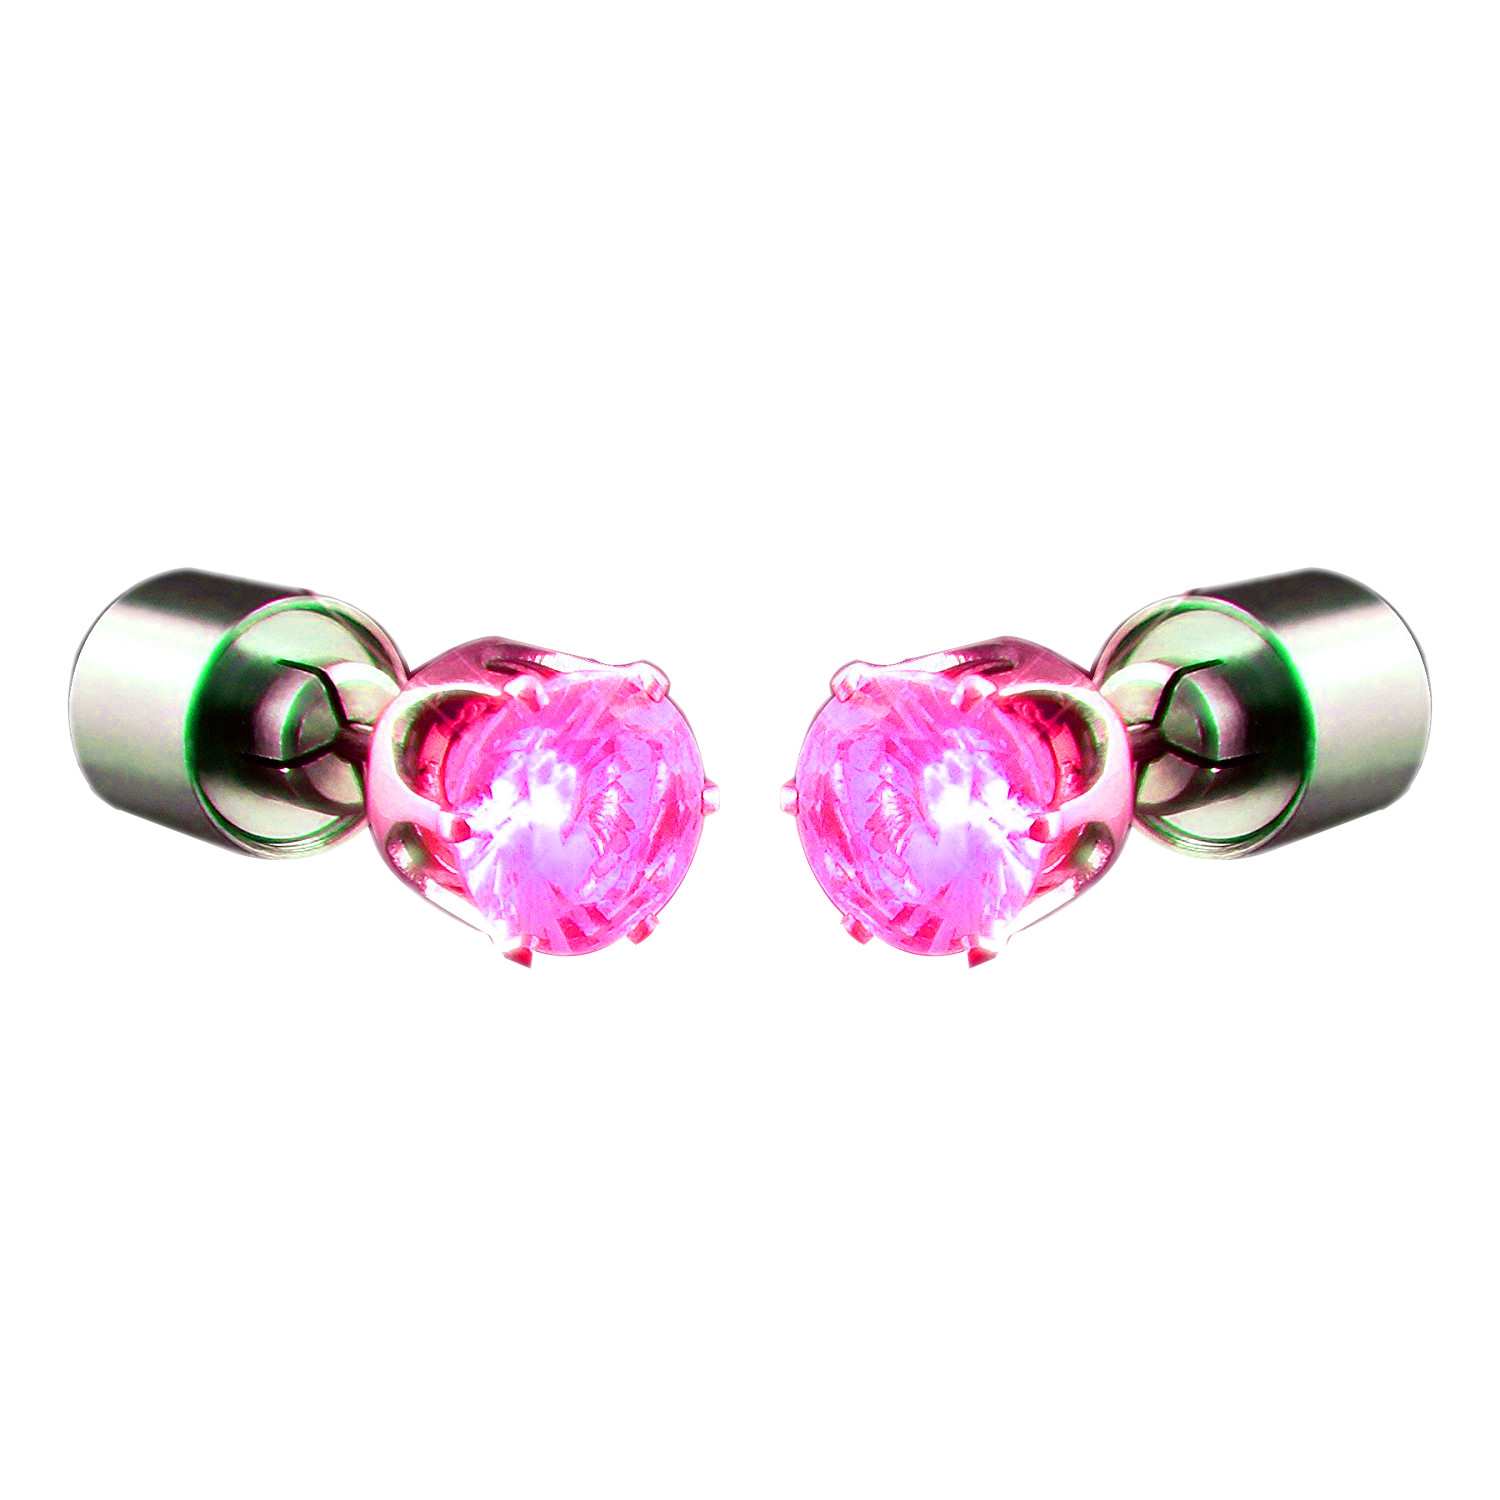 Led Earrings Led Faux Diamond Pierced Earrings Pink